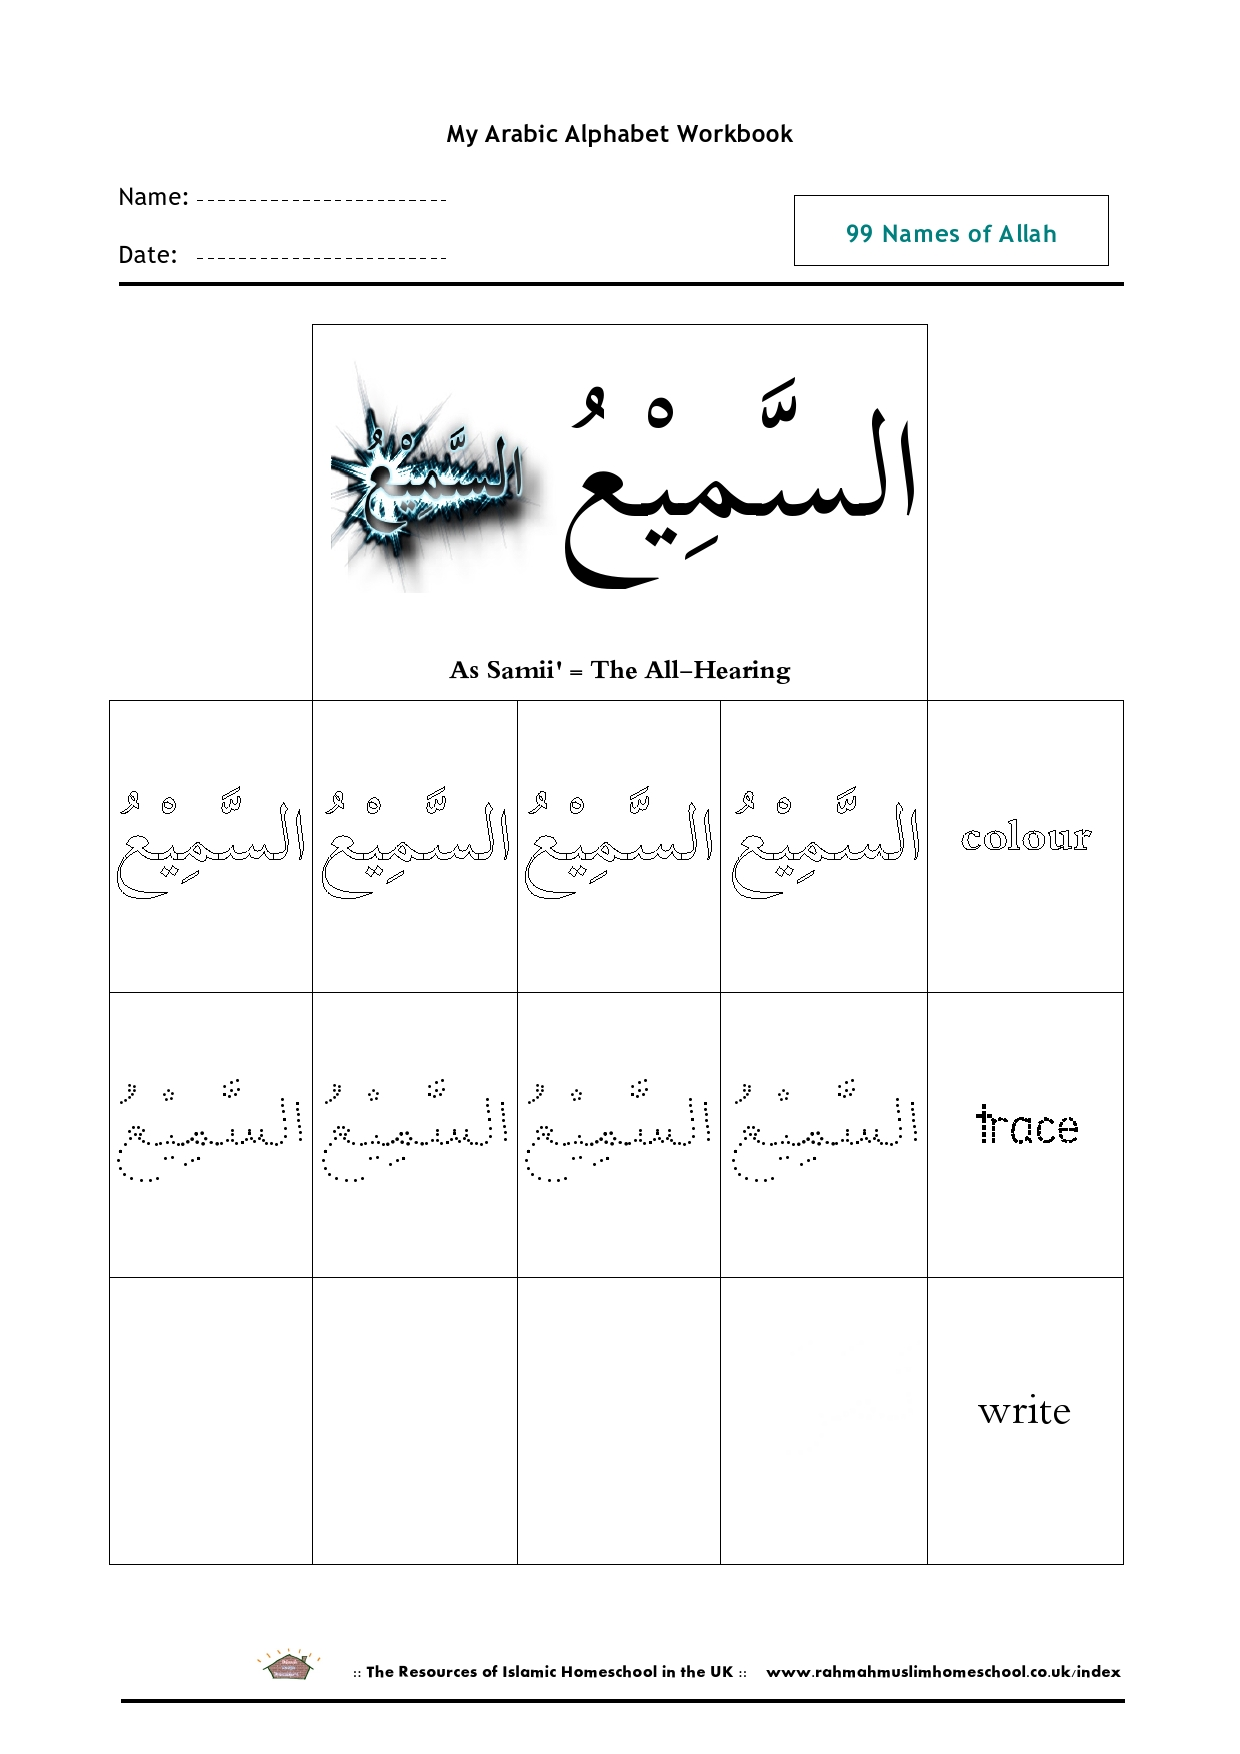 worksheet Alphabet Worksheets Ks2 free arabic worksheet the 99 names of allah as samii all hearing